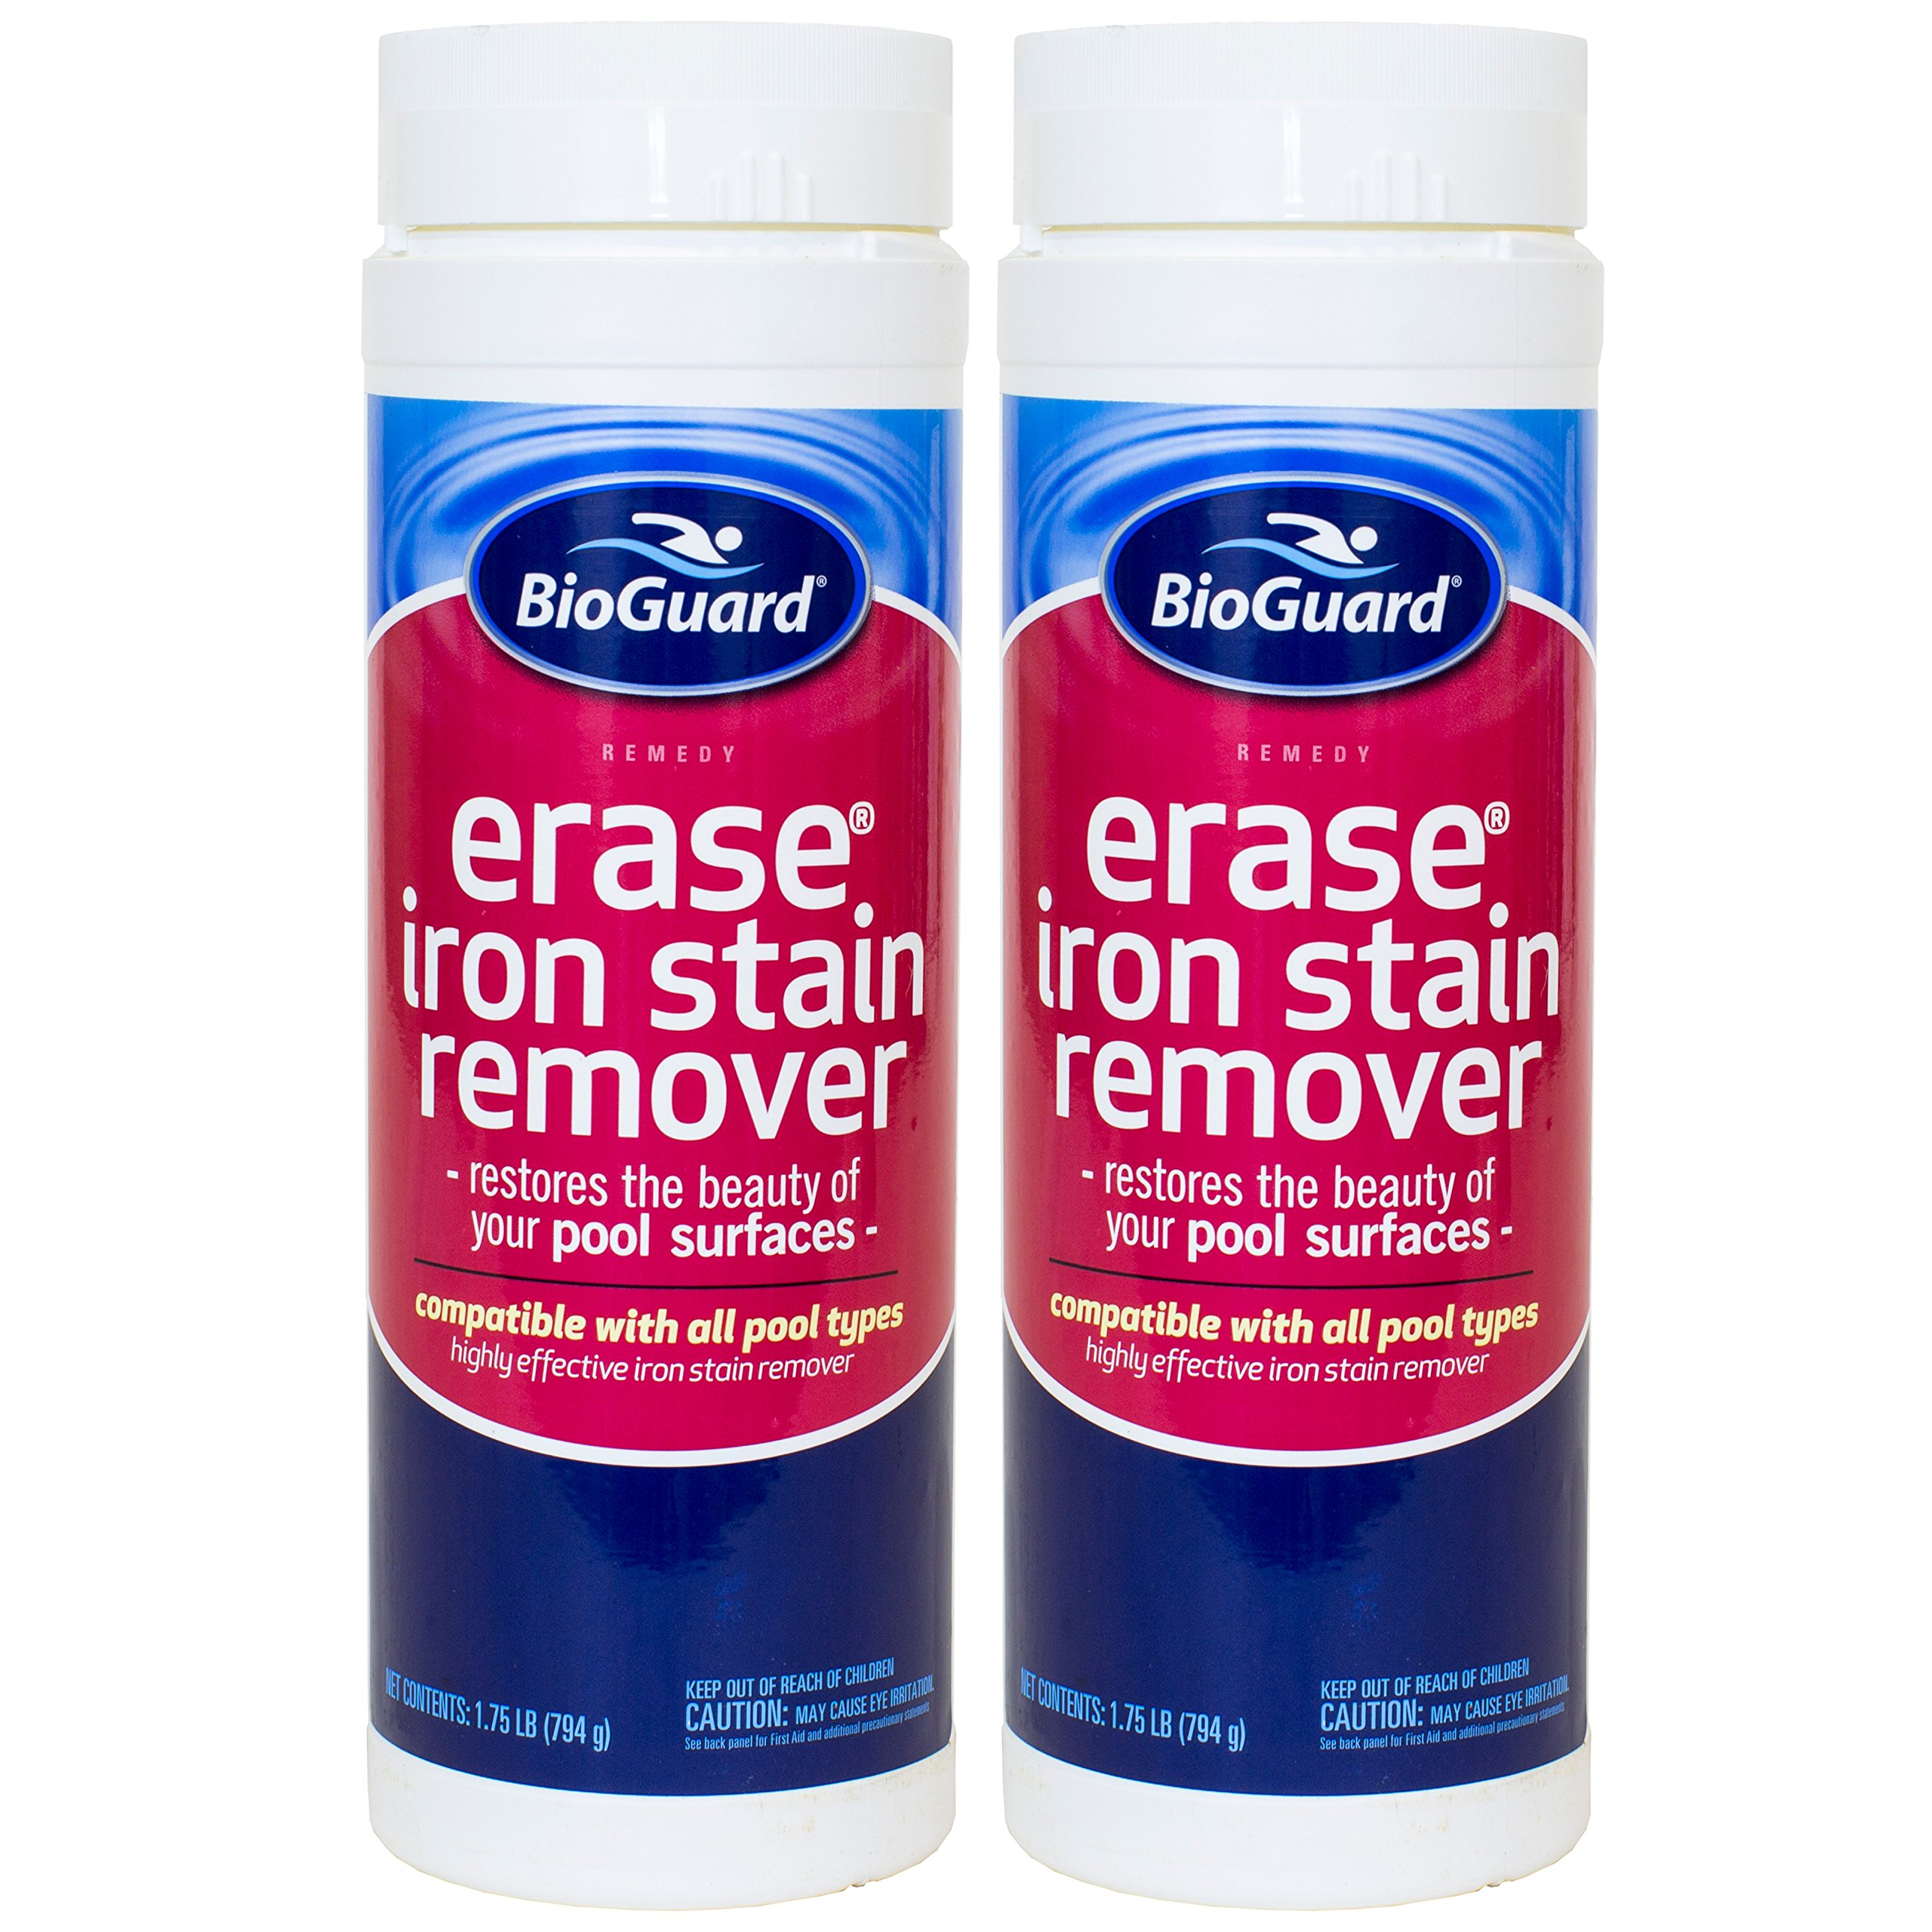 BioGuard Erase Iron Stain Remover (1.75 lb) (2 Pack)